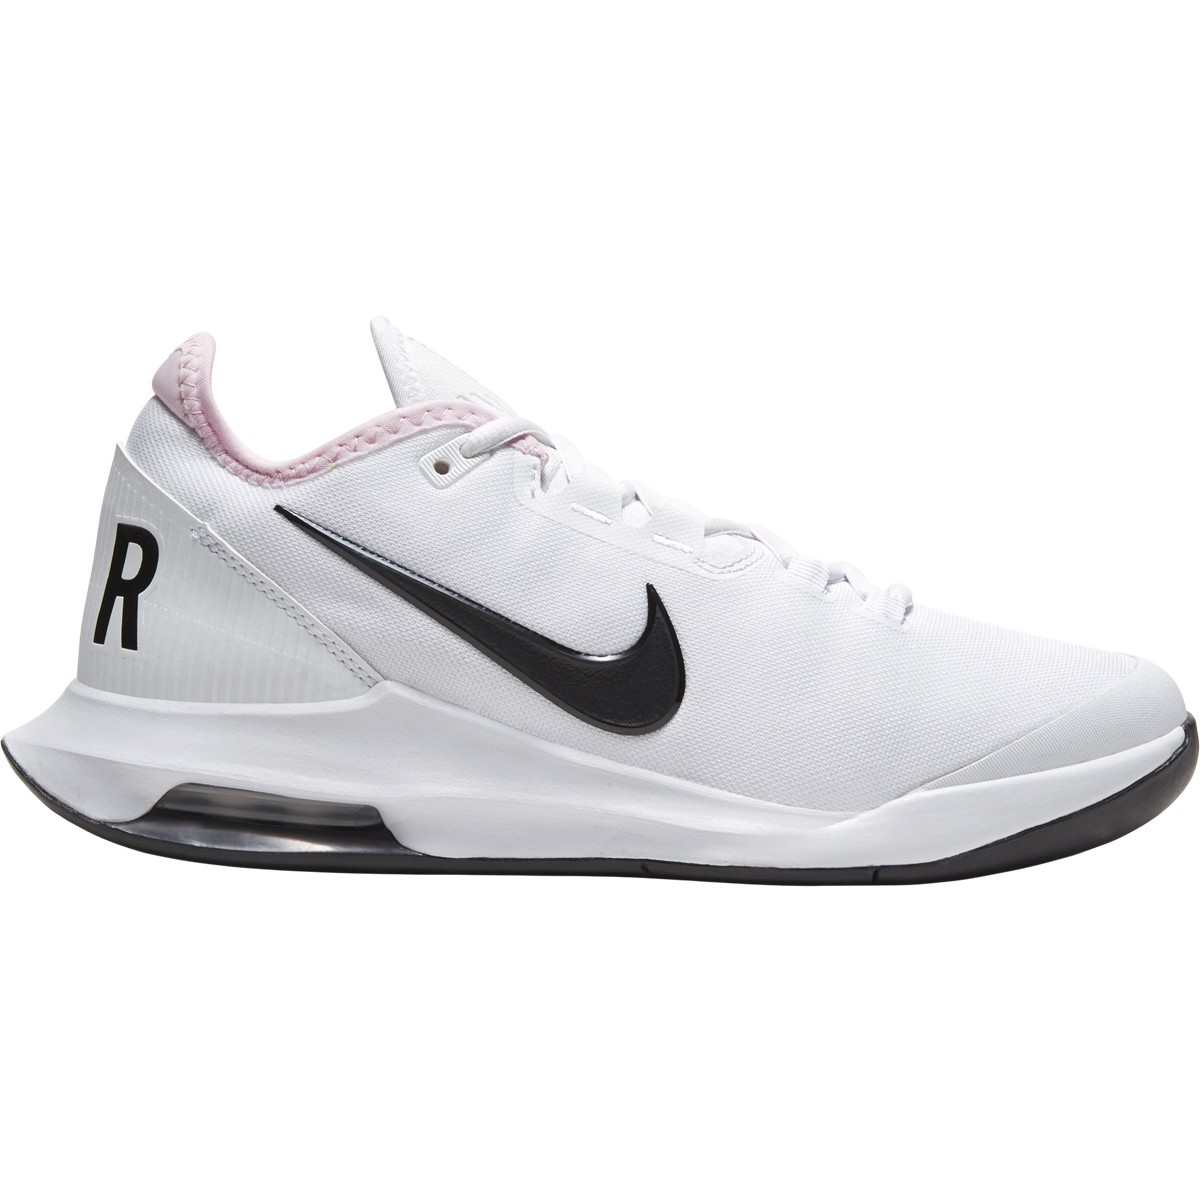 Chaussures Nike Femme Air Max Wildcard Toutes Surfaces Blanches